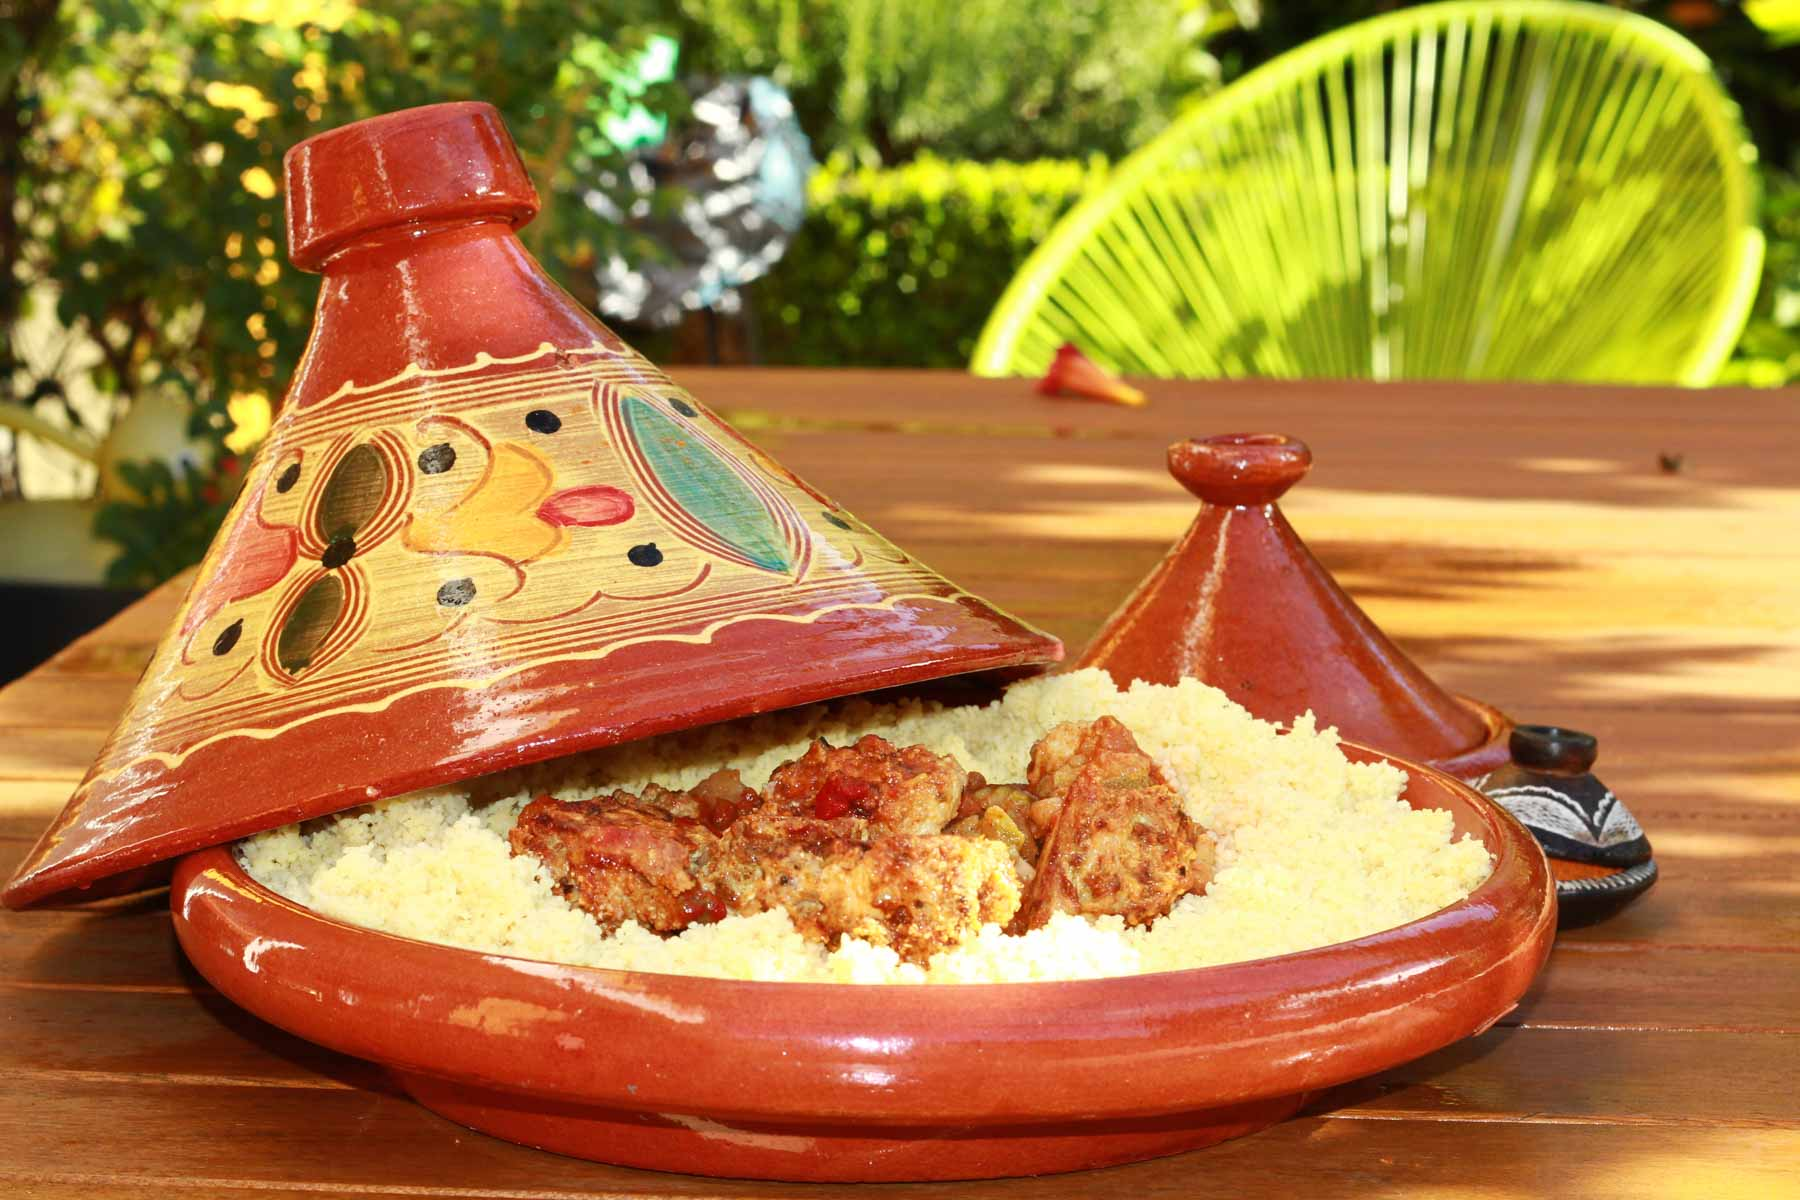 A tagine, perhaps Morocco's most famous cuisine?